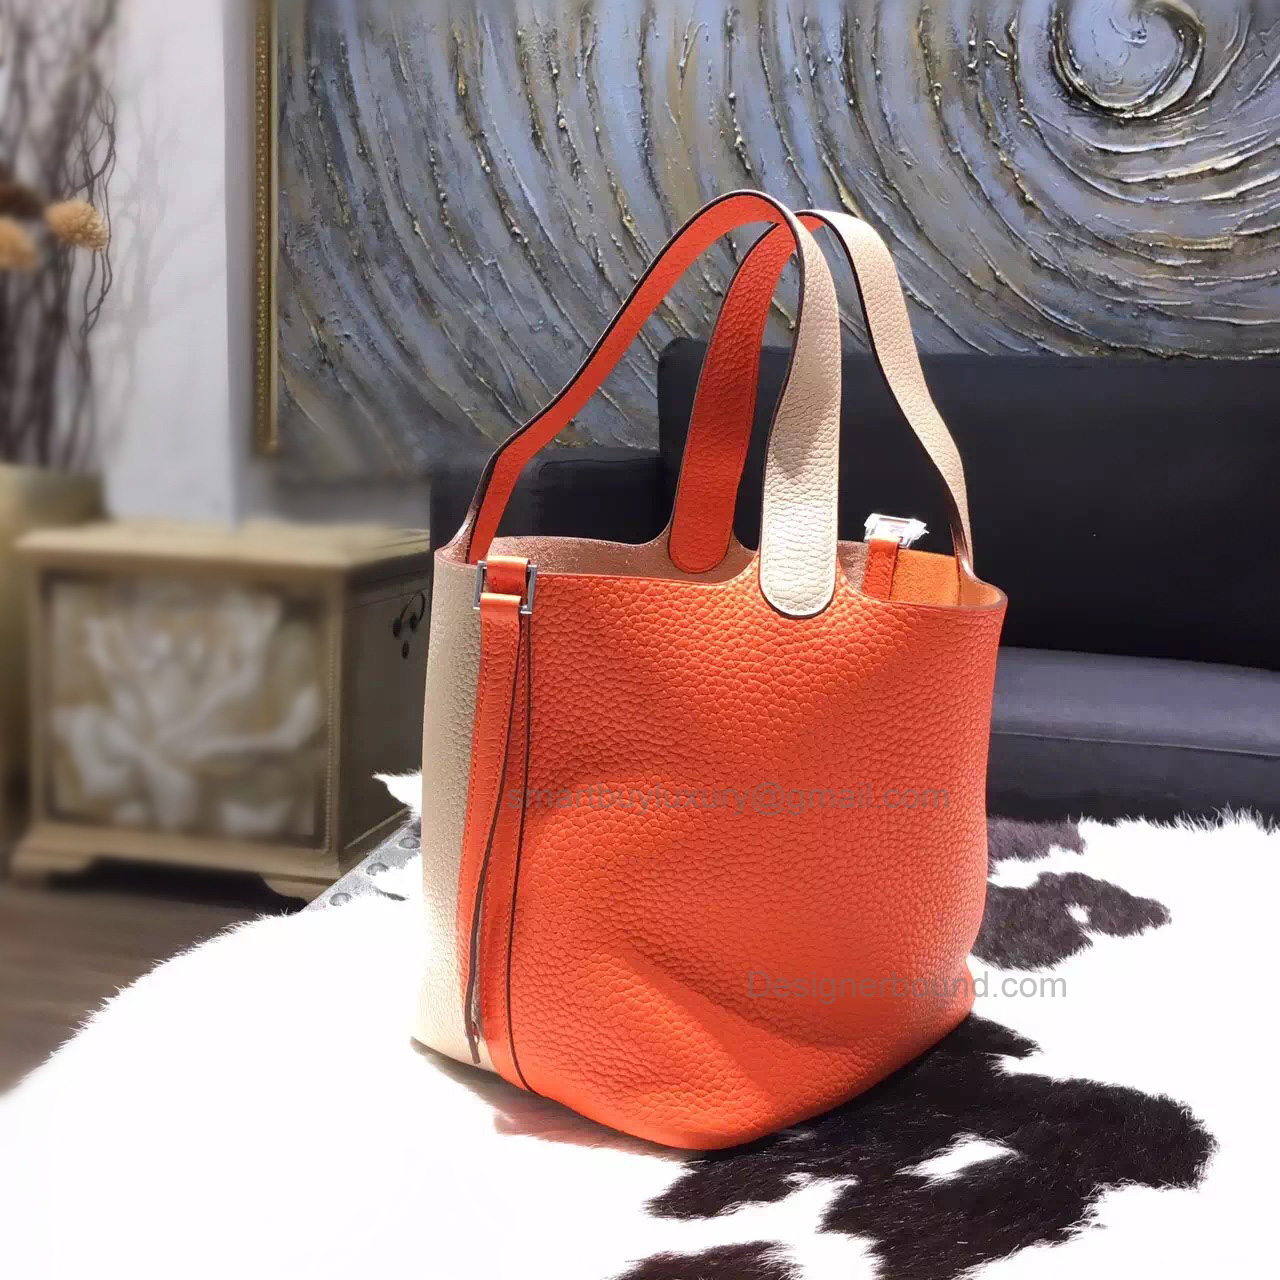 Replica Hermes Picotin Lock 22 Bag Handmade in Bicolored cc93 Orange Clemence